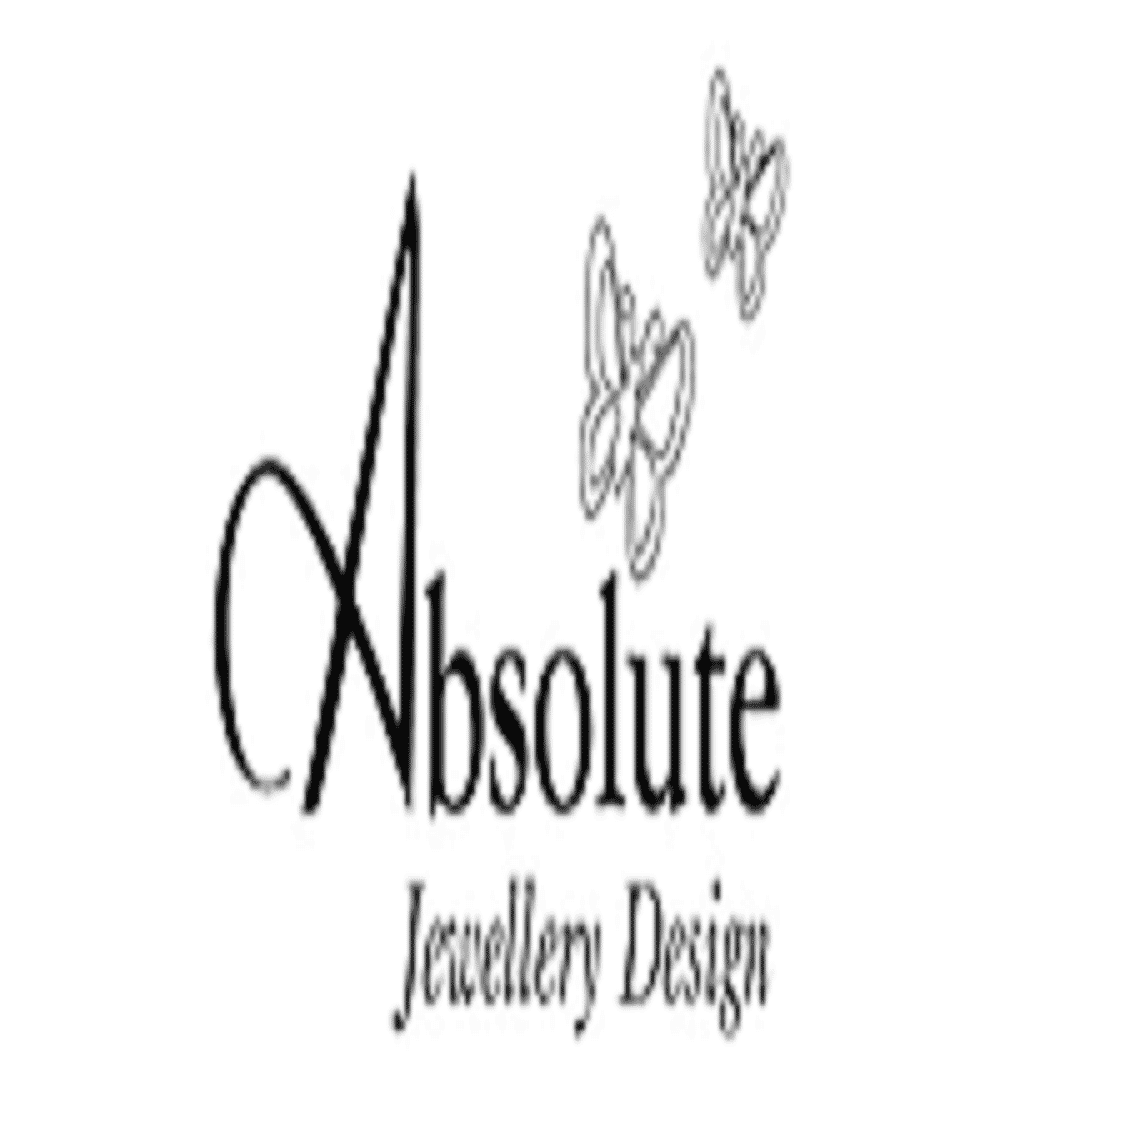 Arlene Nee, Absolute Jewellery Design